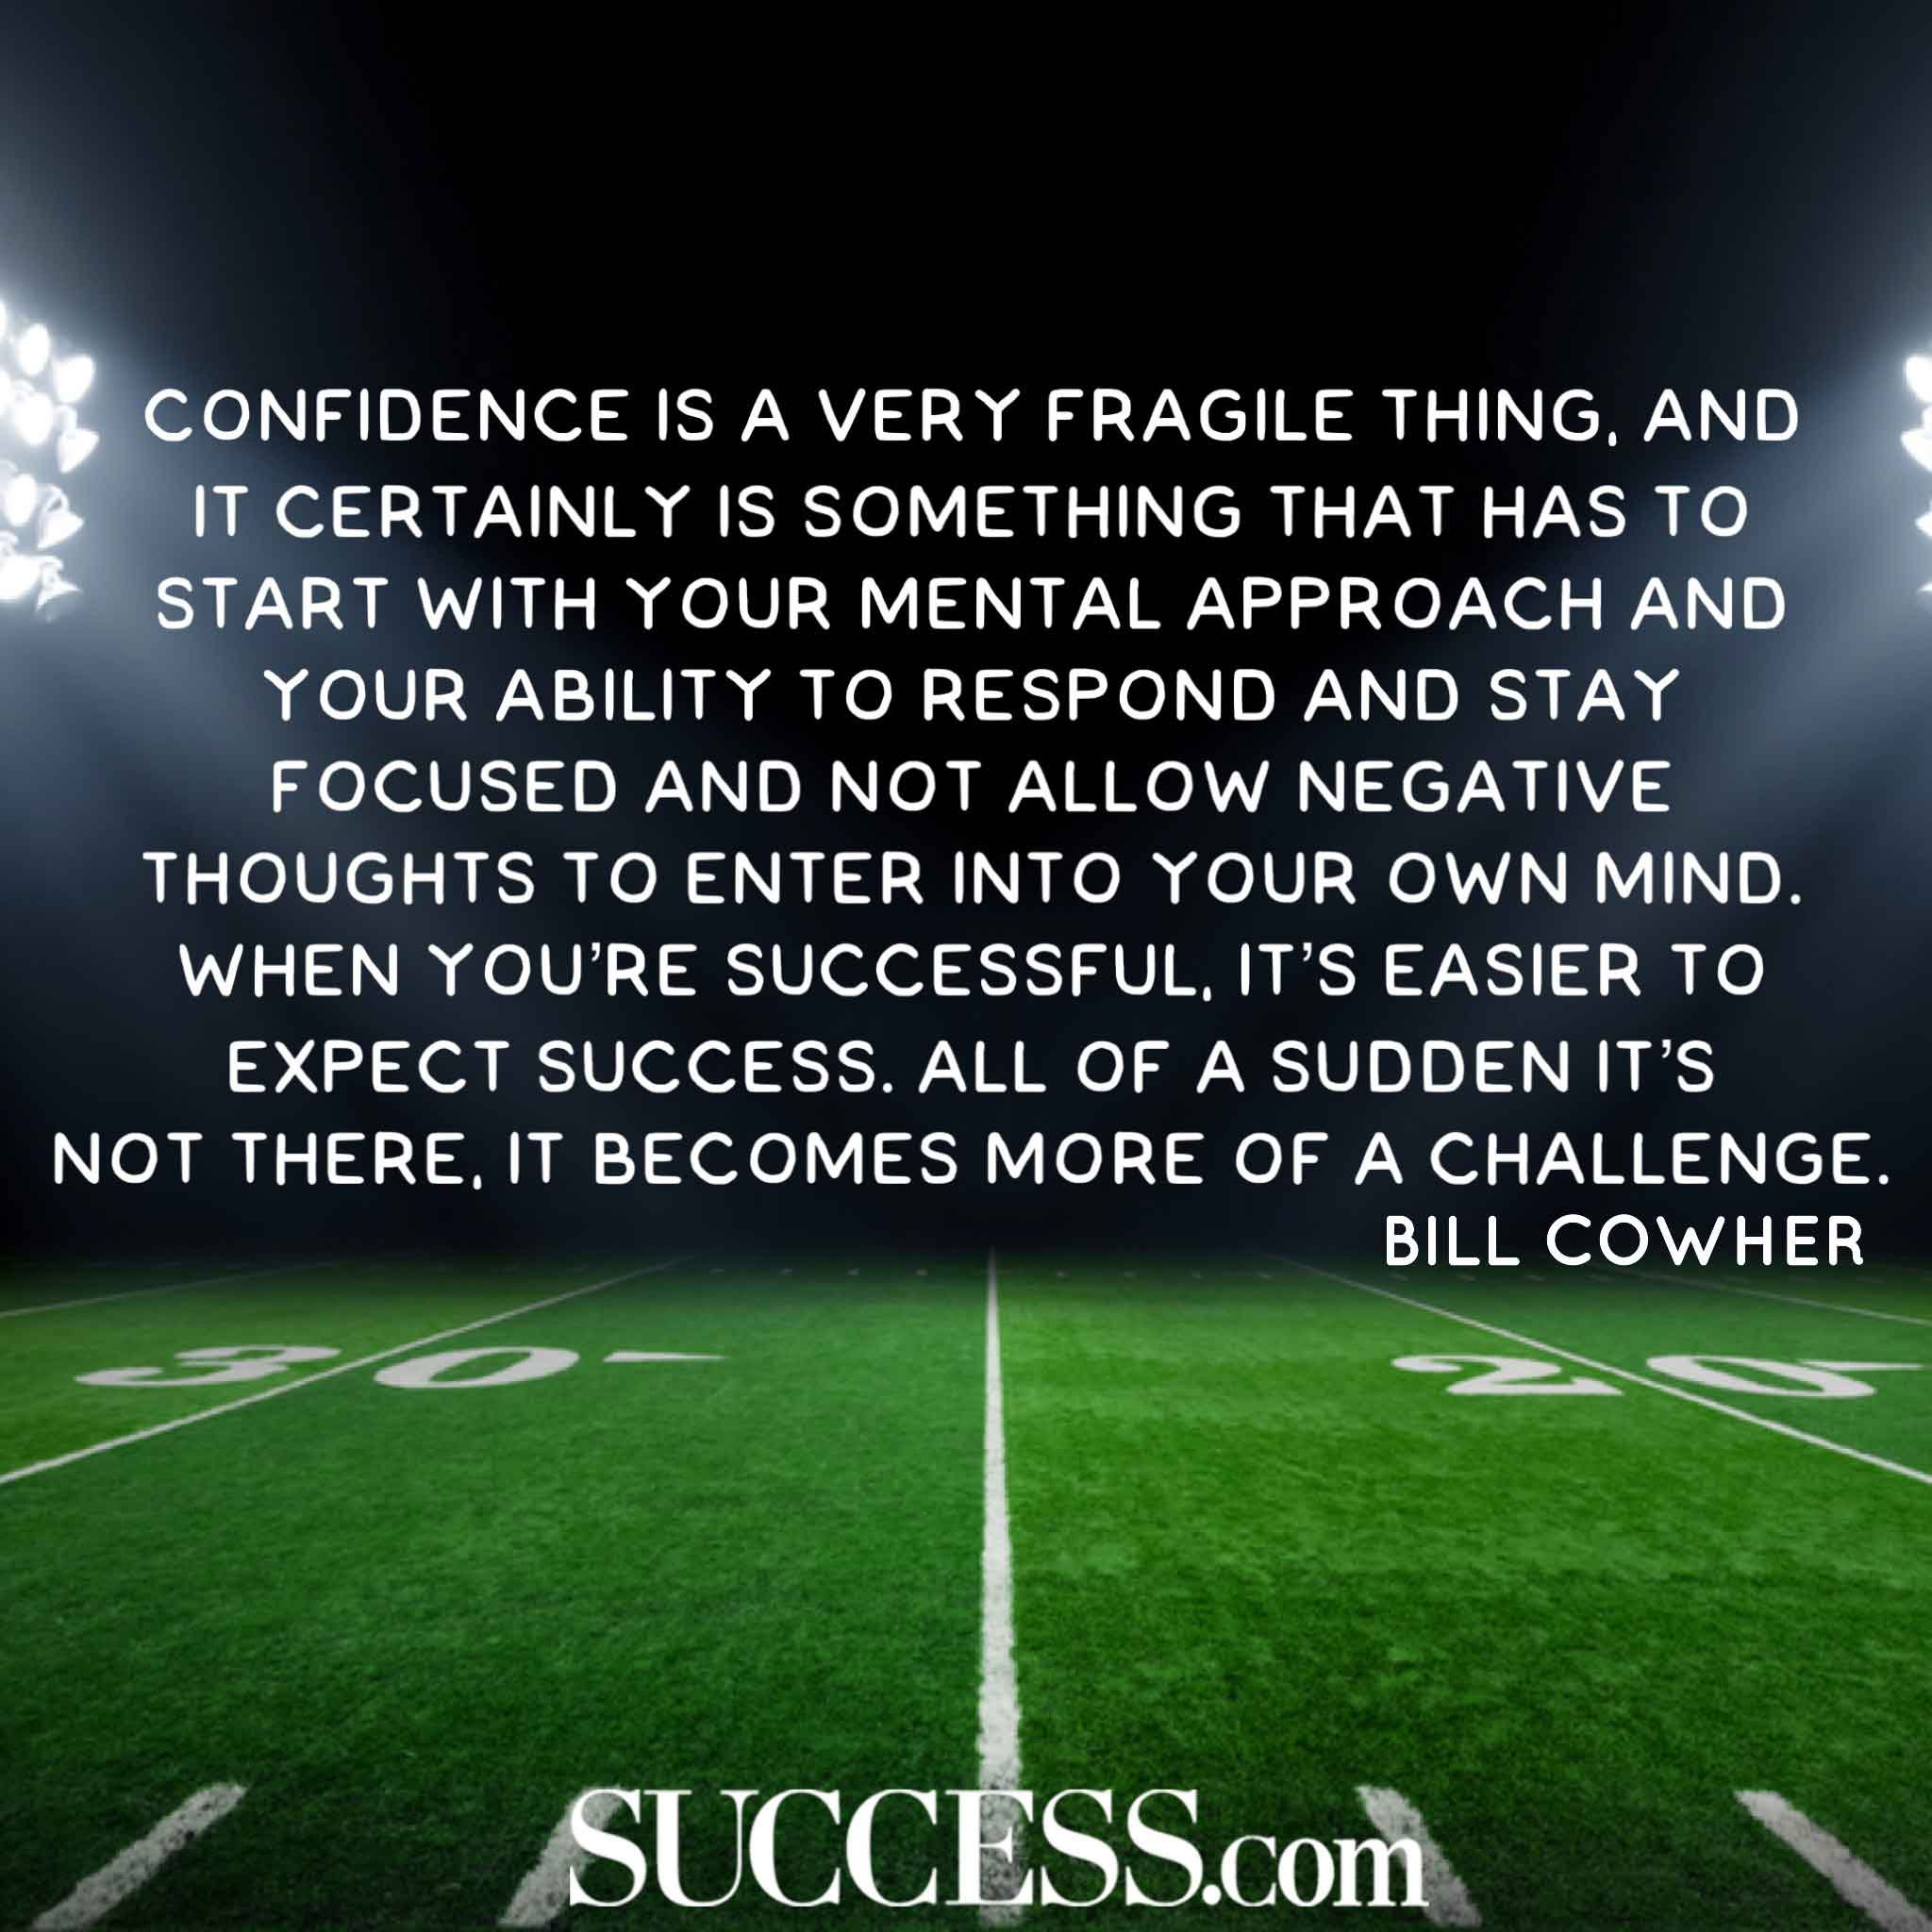 Most Inspiring Quotes: 20 Motivational Quotes By The Most Inspiring NFL Coaches